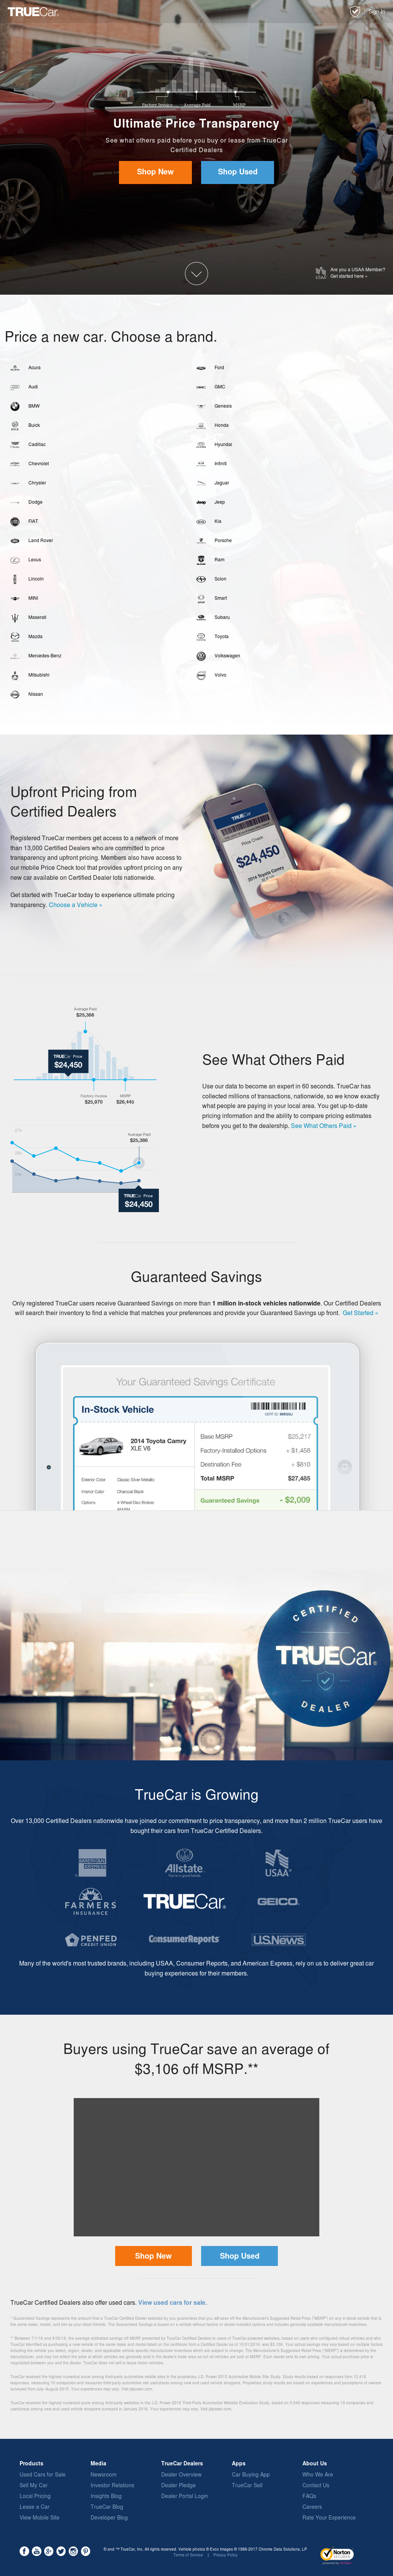 truecar website history